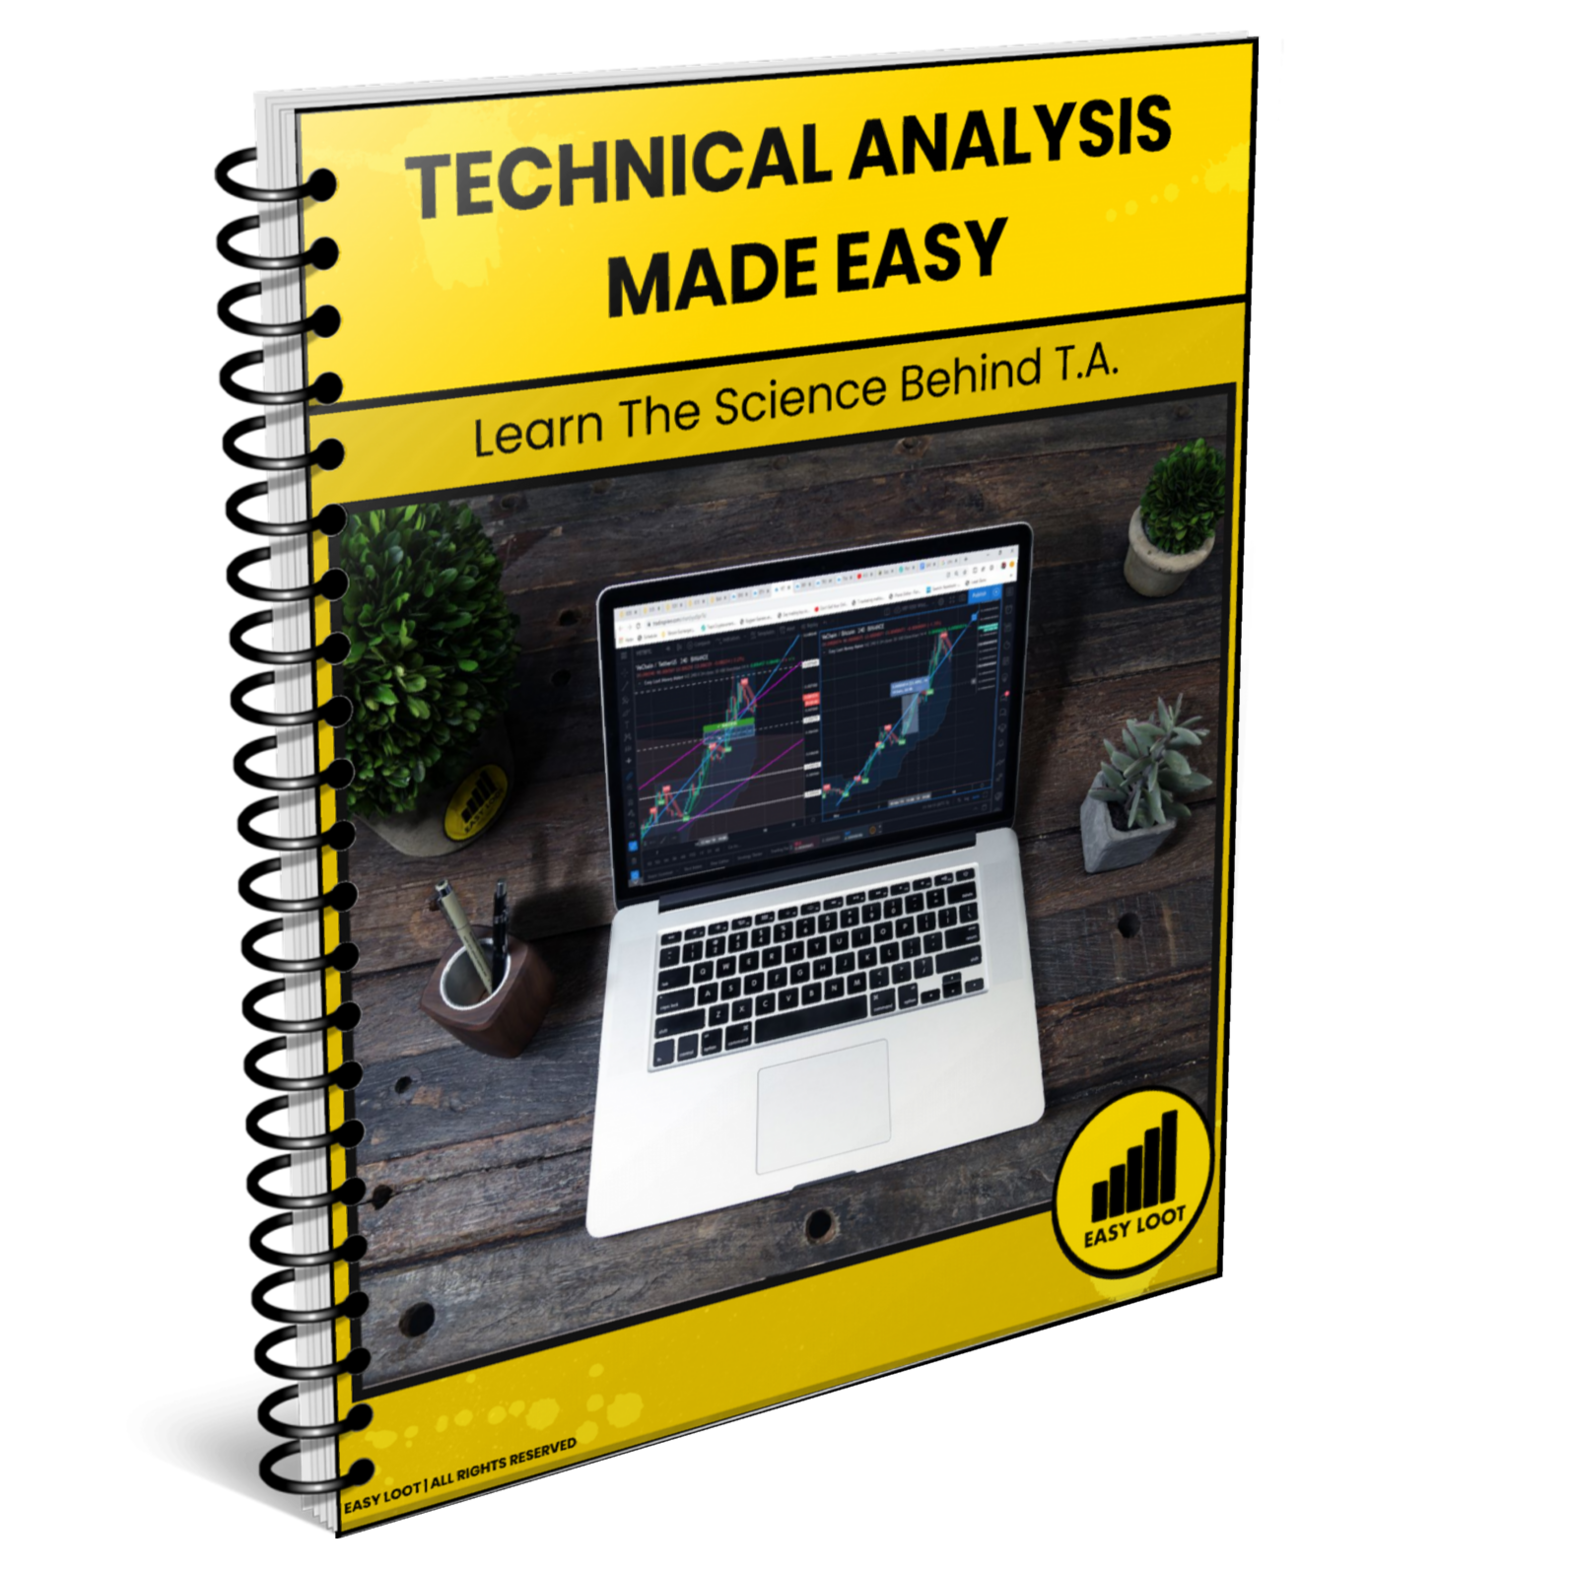 Easy Loot Technical Analysis Made Easy eBook